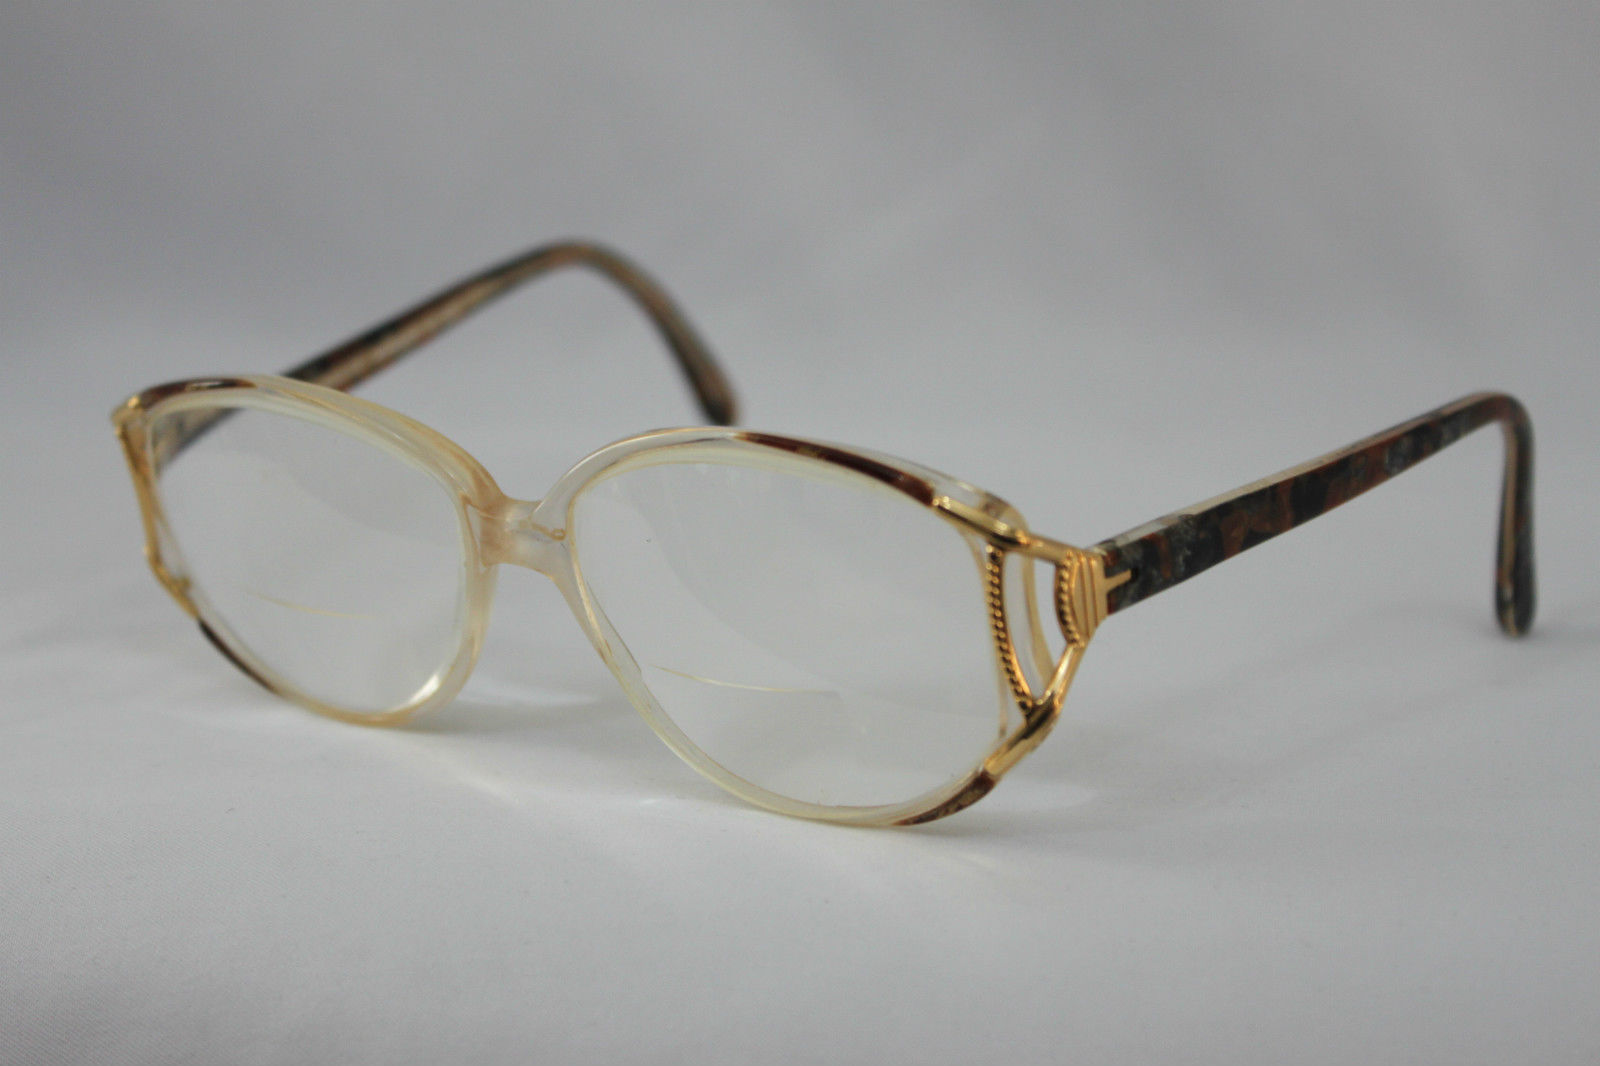 Vintage Sferoflex Made in Italy Glasses Frames M355 ...